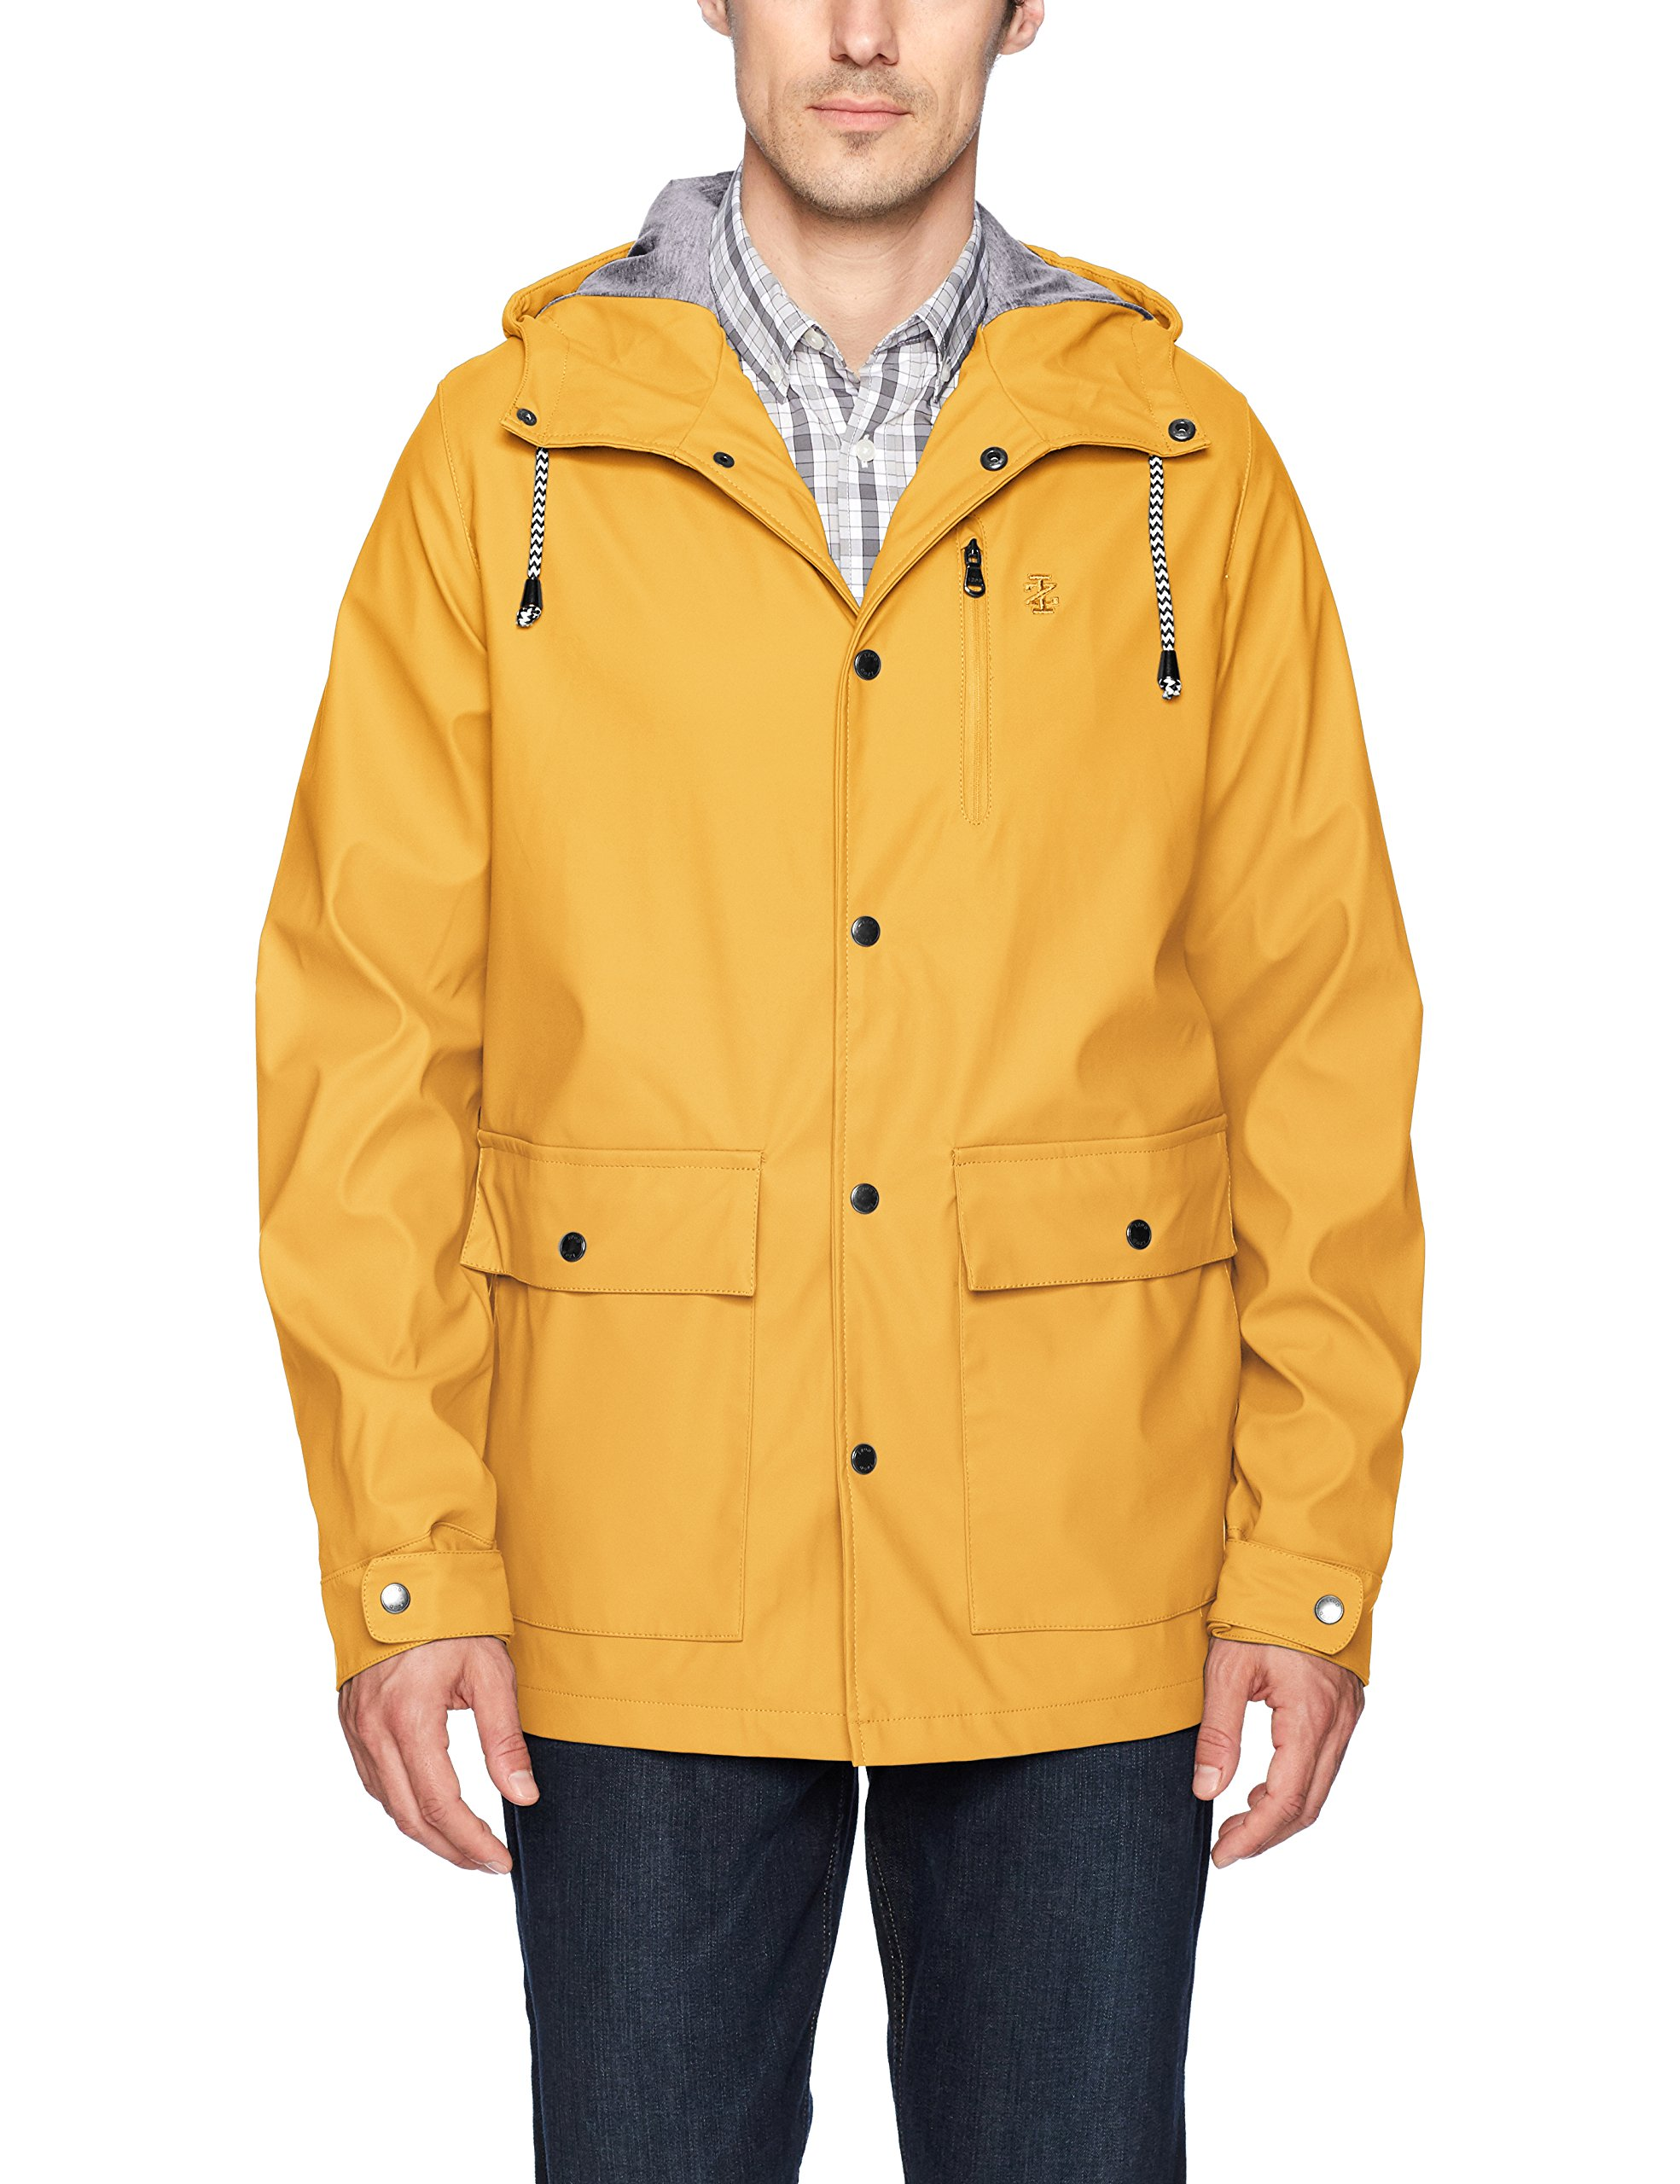 IZOD Men's True Slicker Rain Jacket, Yellow, M by IZOD